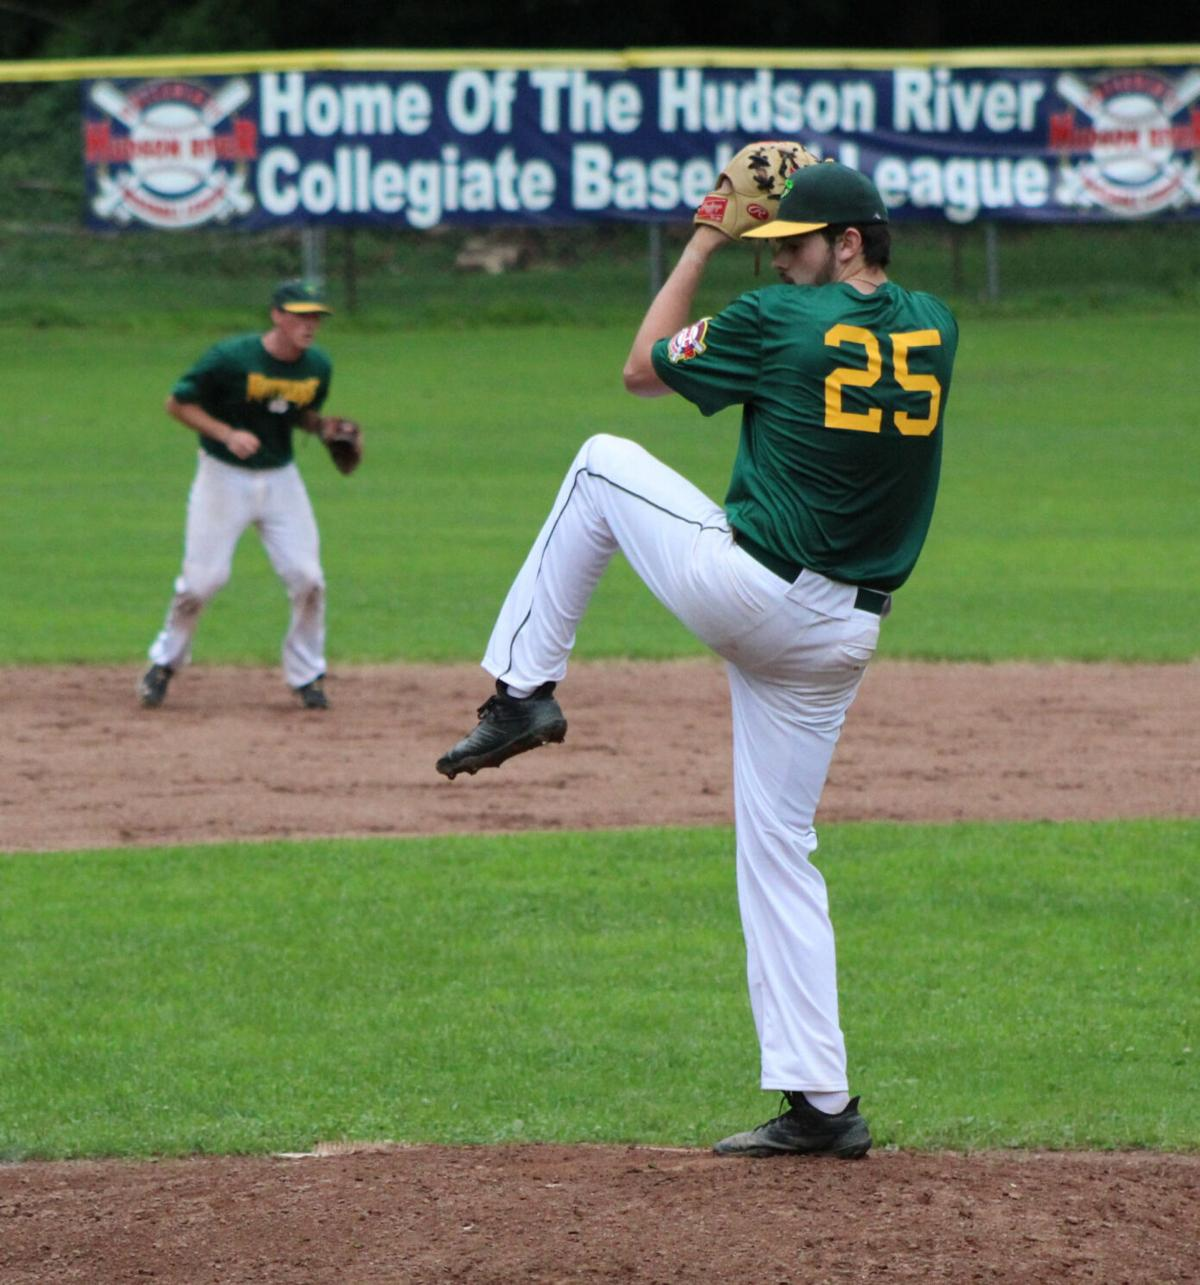 HRCBL: Rattlers notch 4-1 win over Mudcats, tie Storm for 1st place